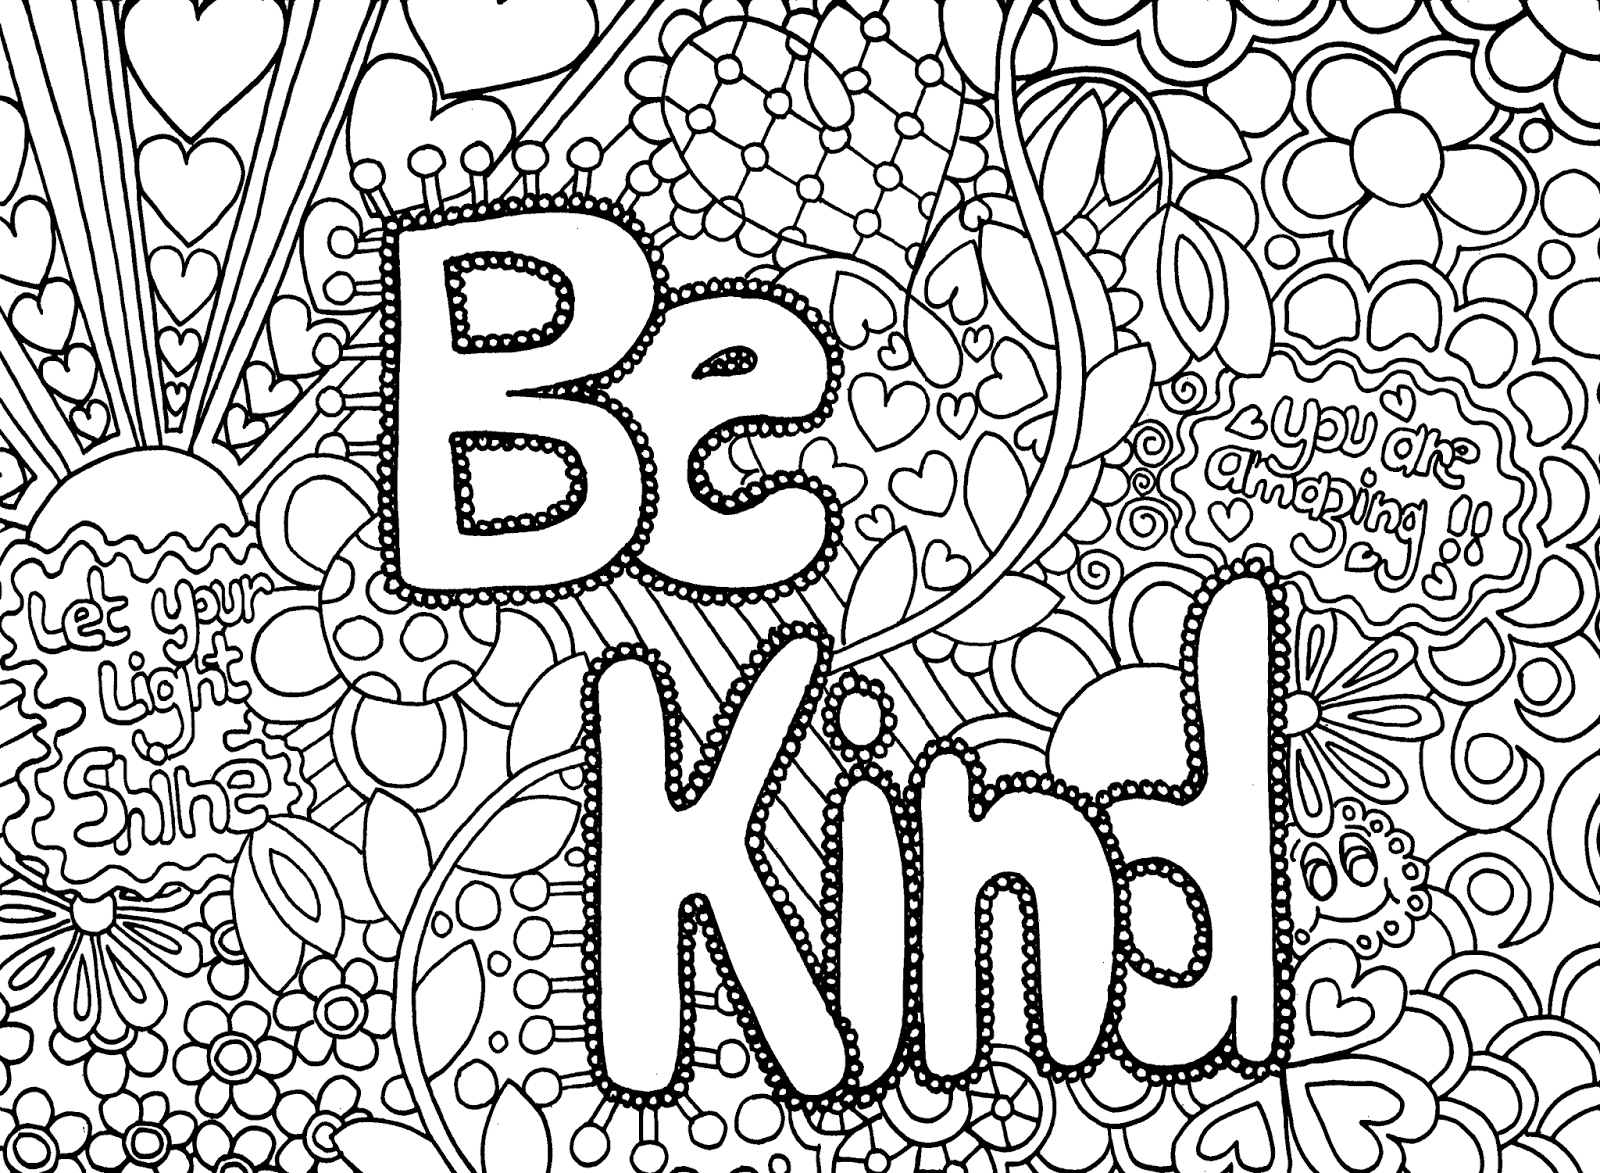 hard coloring pages for adults butterfly r coloring pages difficult coloring home adults hard coloring for pages